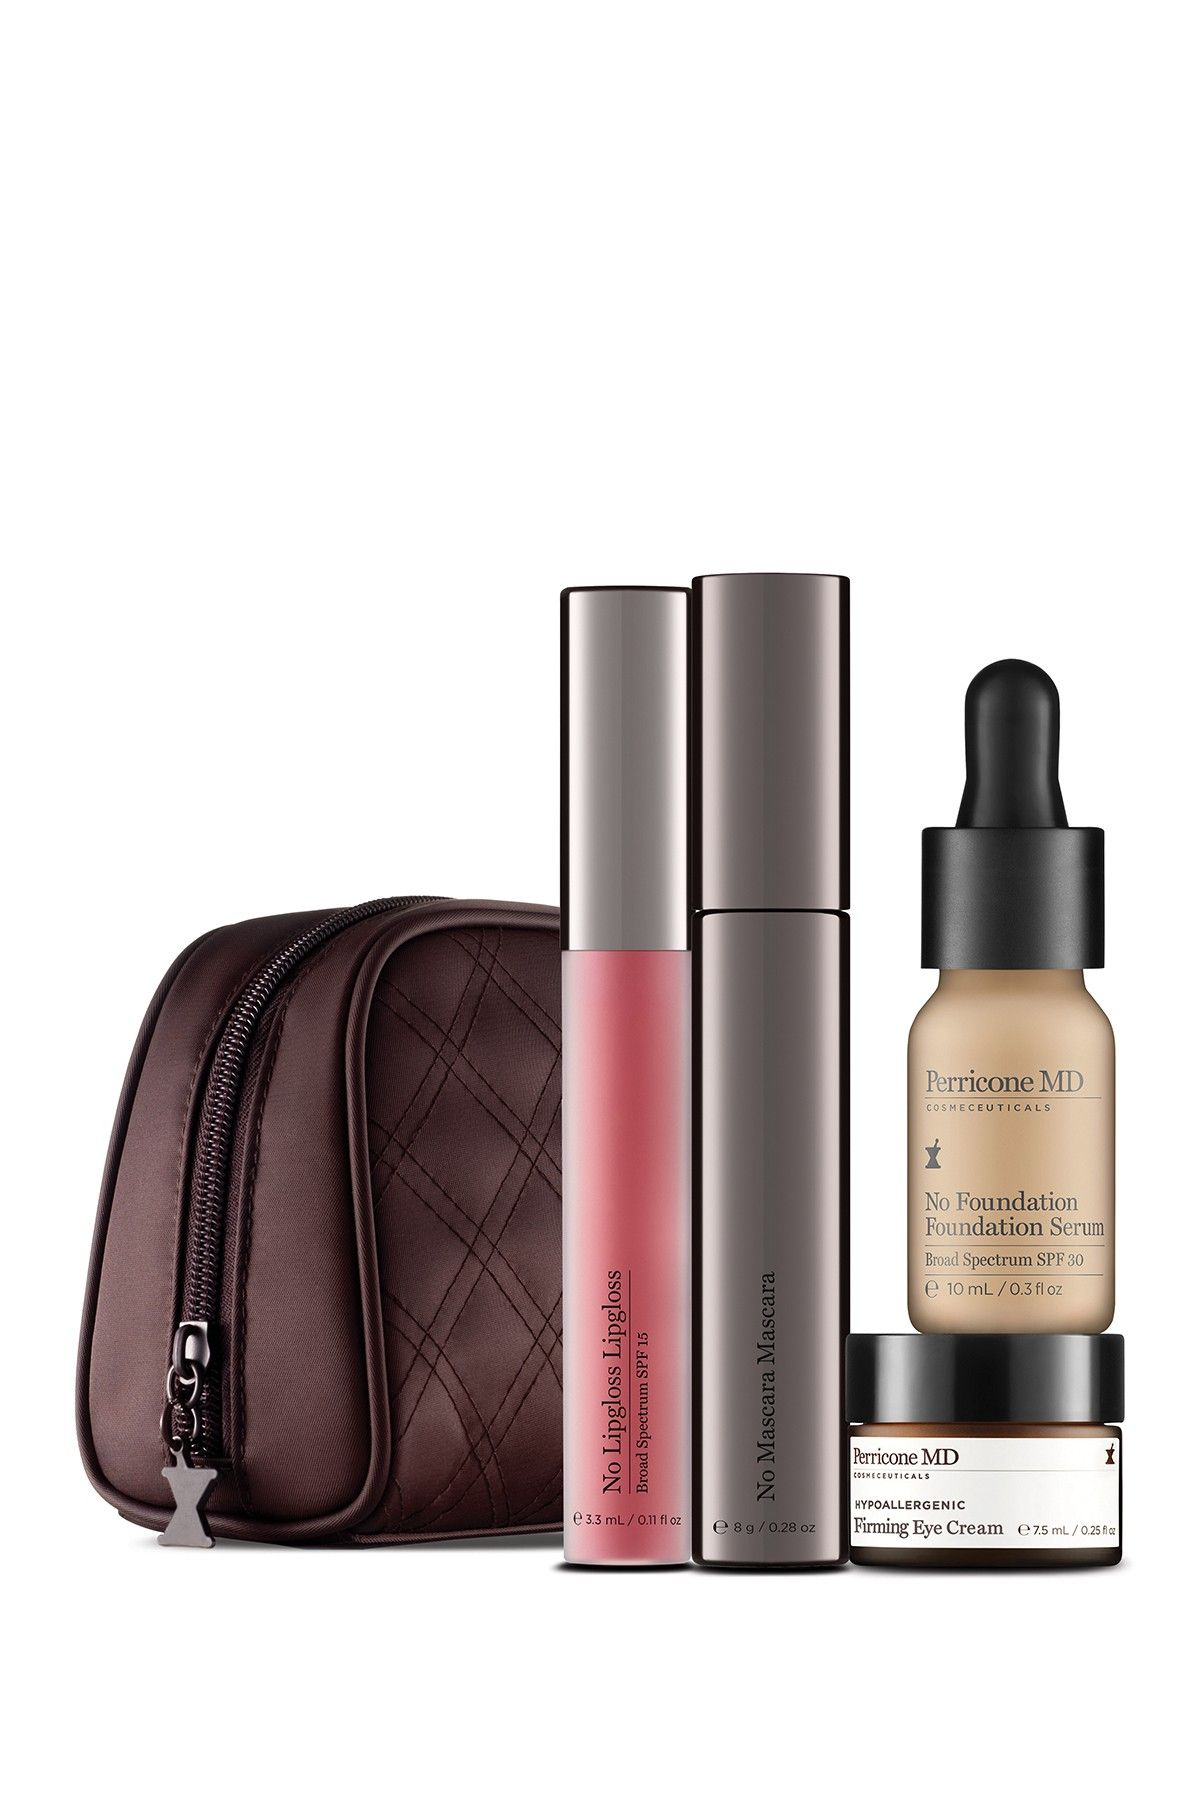 Perricone MD No Makeup Skincare Glow on the Go 5Piece